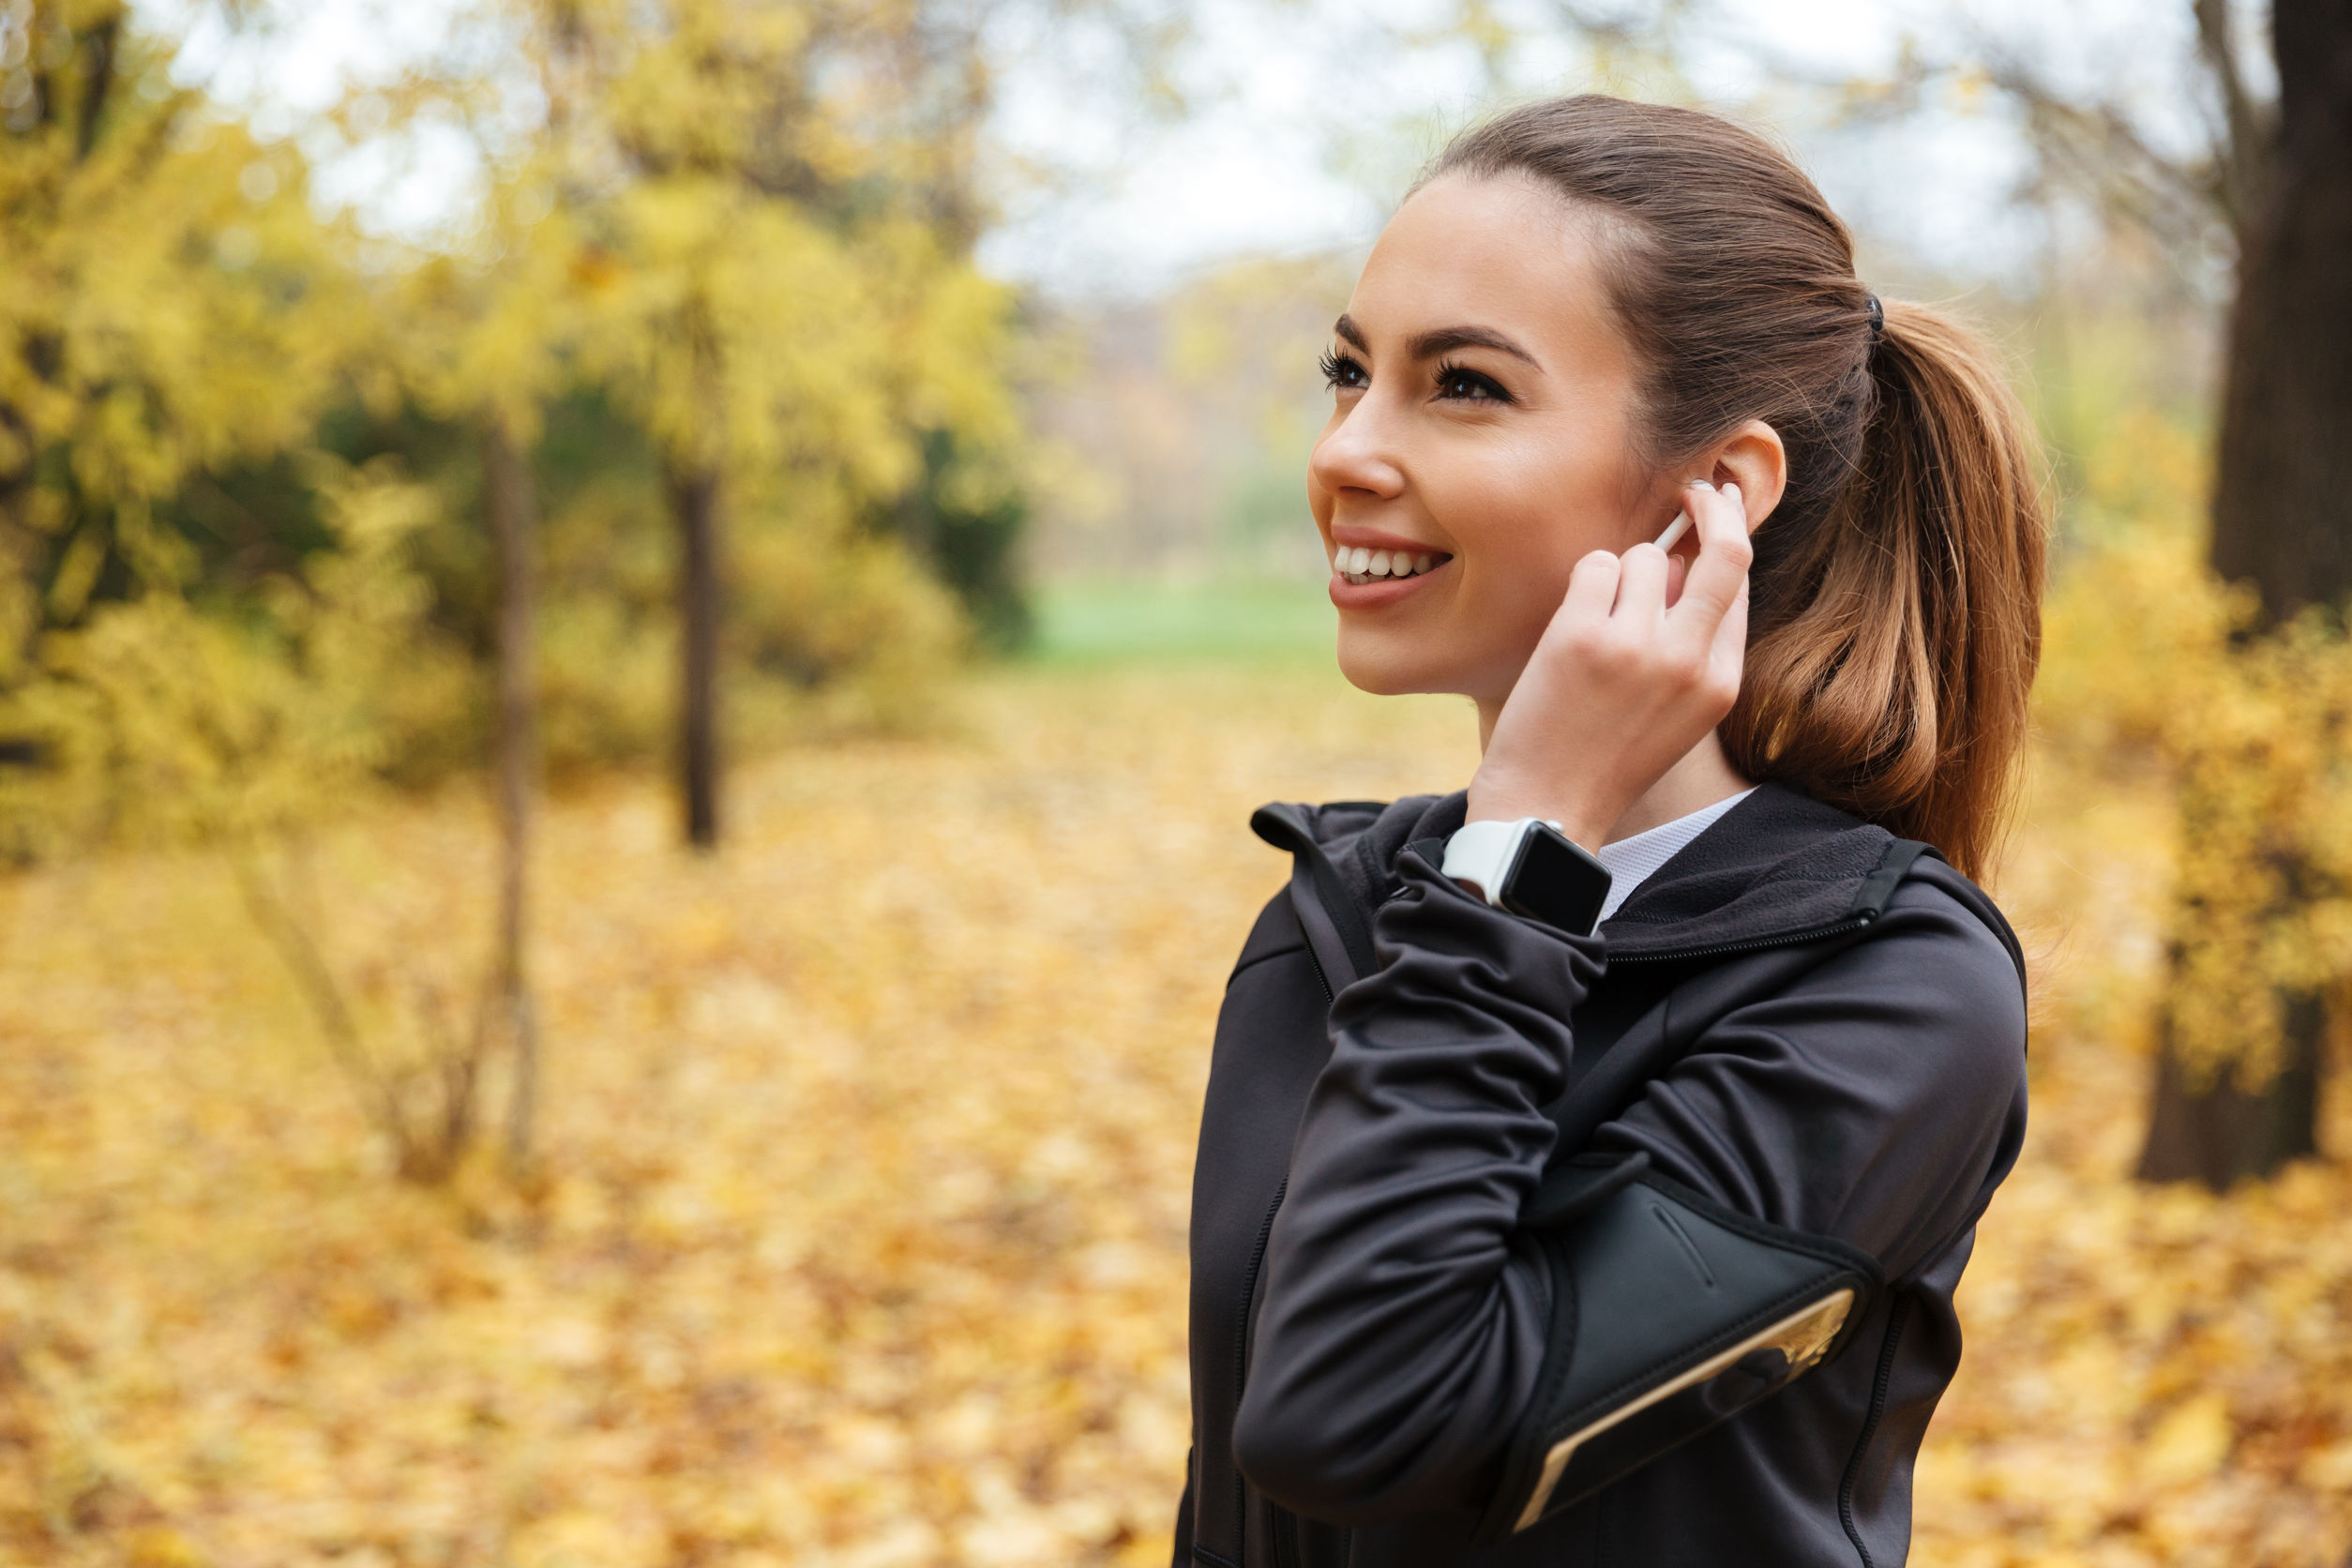 Portrait of a smiling fitness girl listening to music